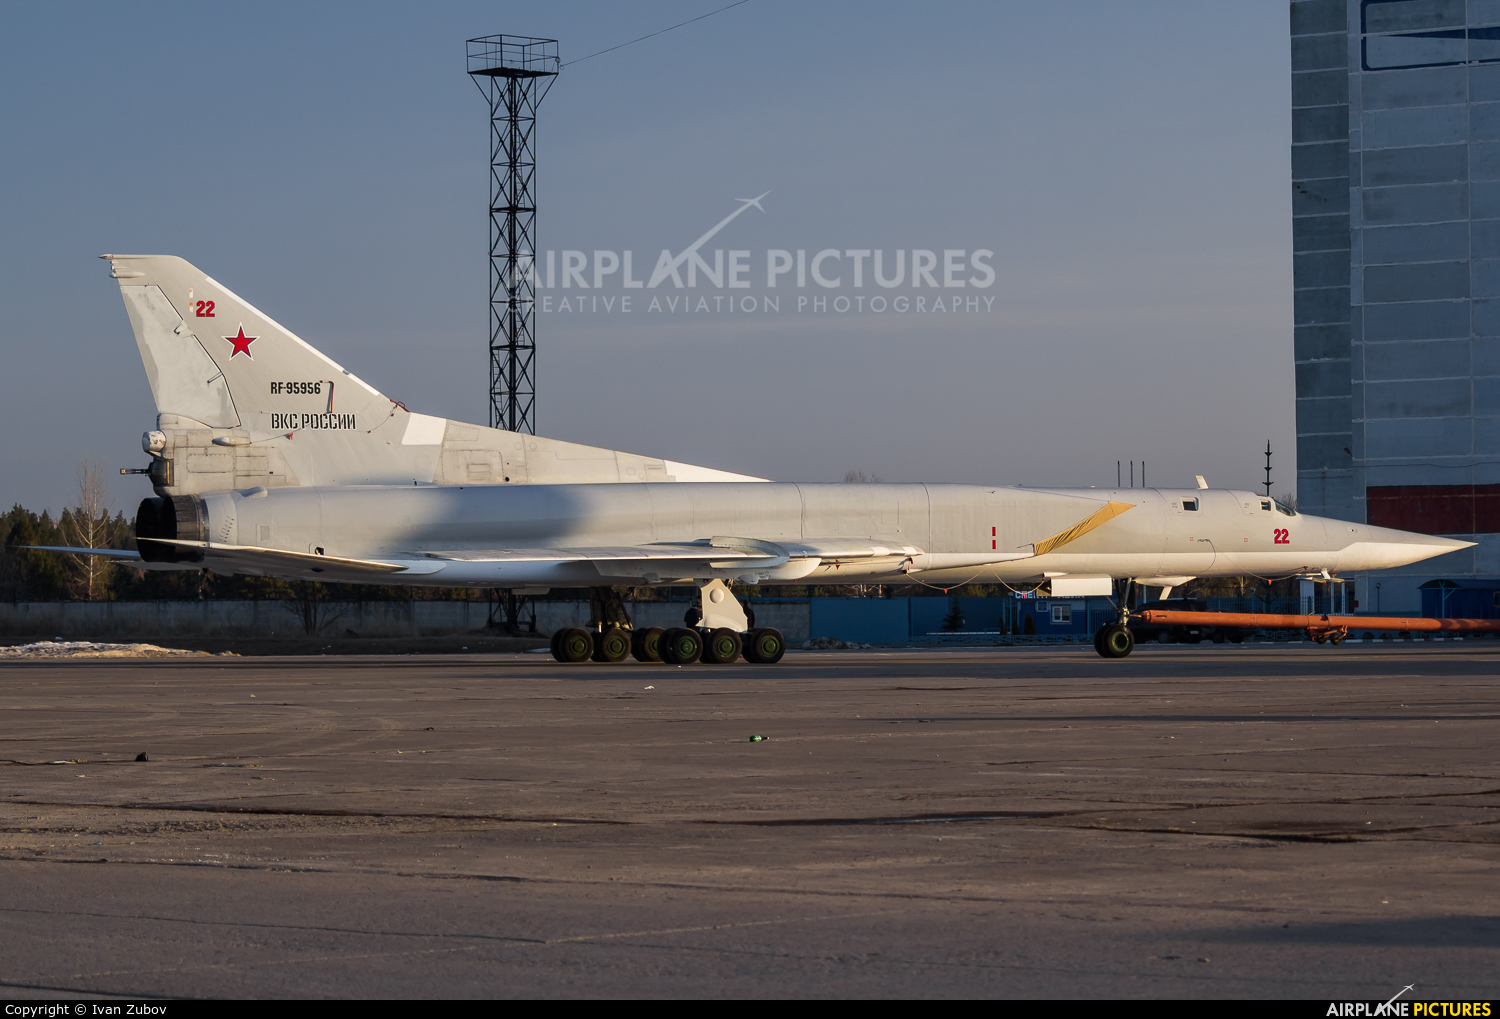 Russia - Air Force RF-95956 aircraft at Undisclosed Location